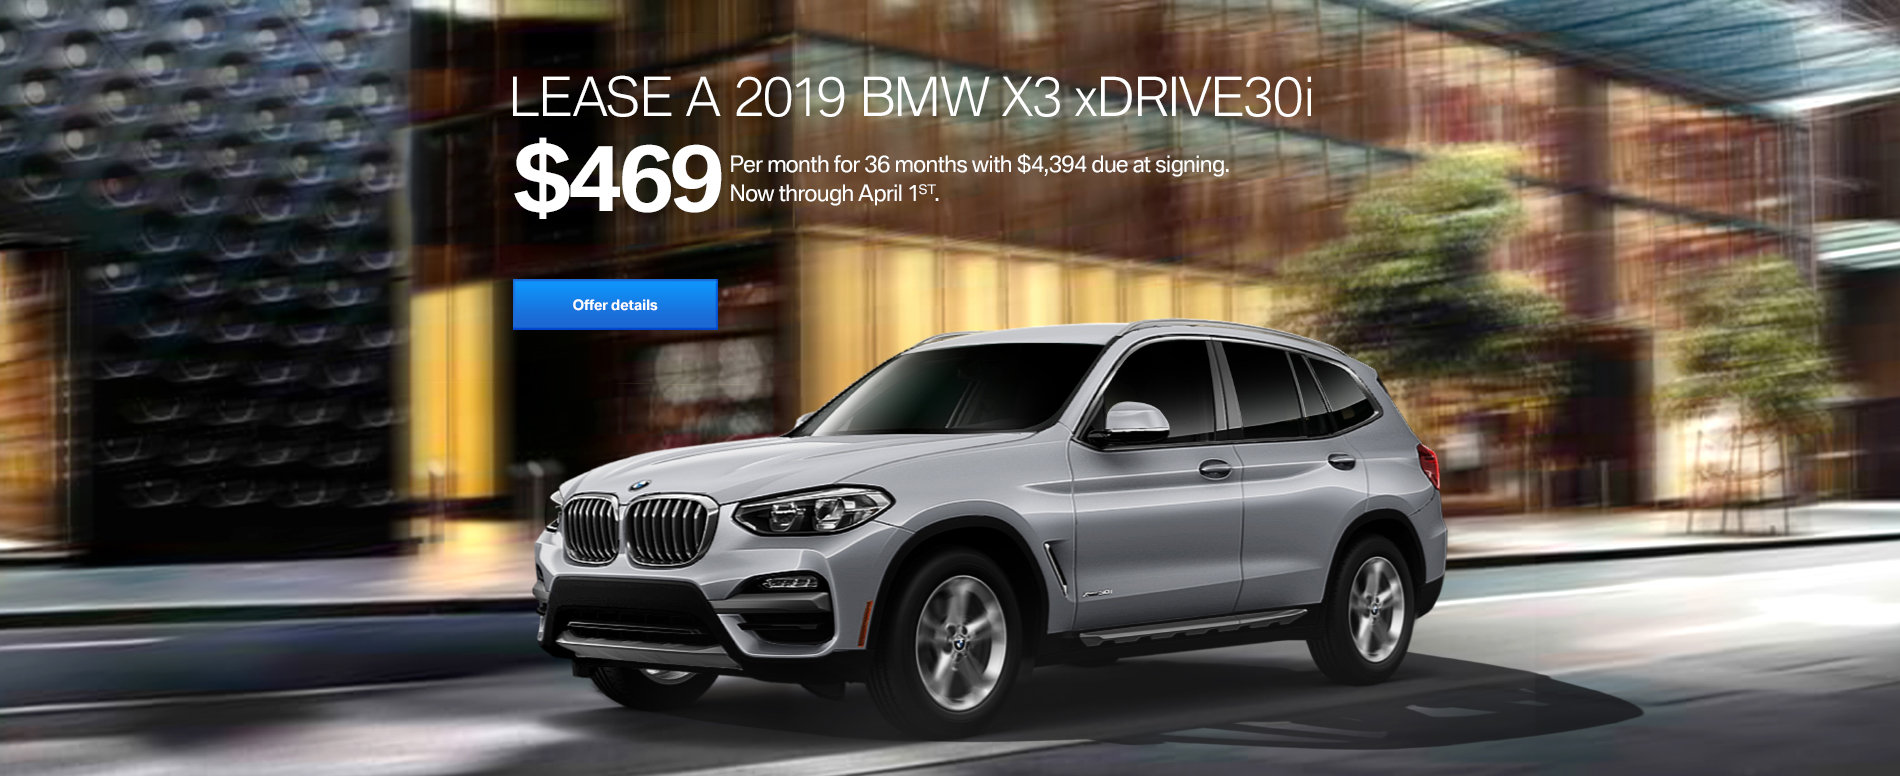 LEASE A 2019 BMW X3 xDRIVE30i FOR $469/MONTH FOR 36 MONTHS WITH